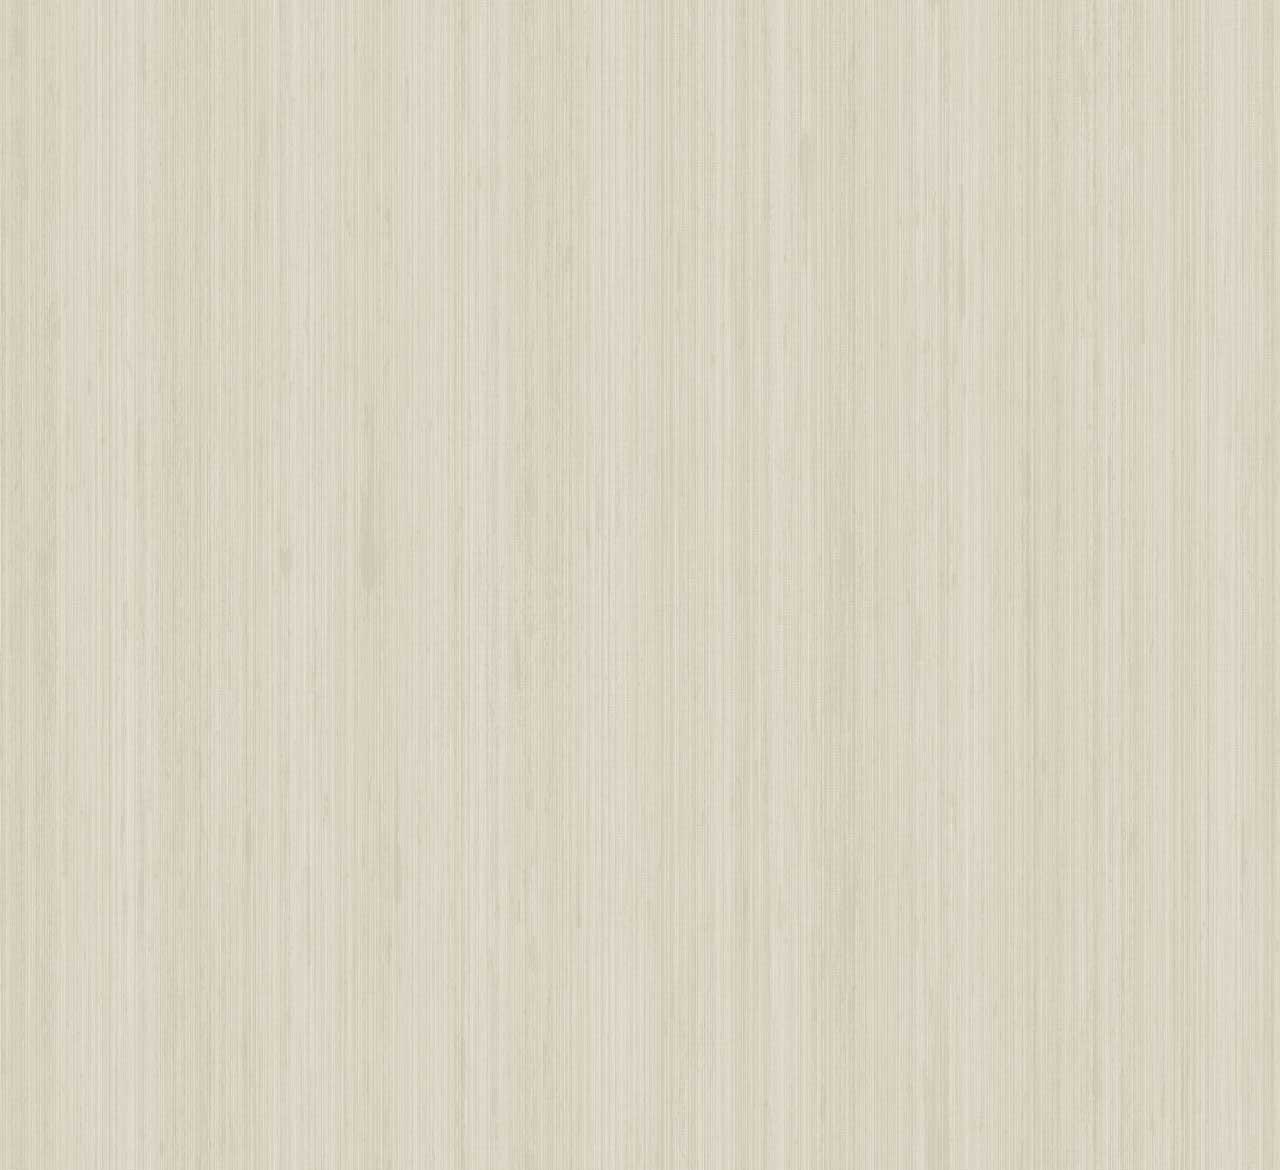 Capri-Luxury-Wallpaper-CP00738-Silk-Texture